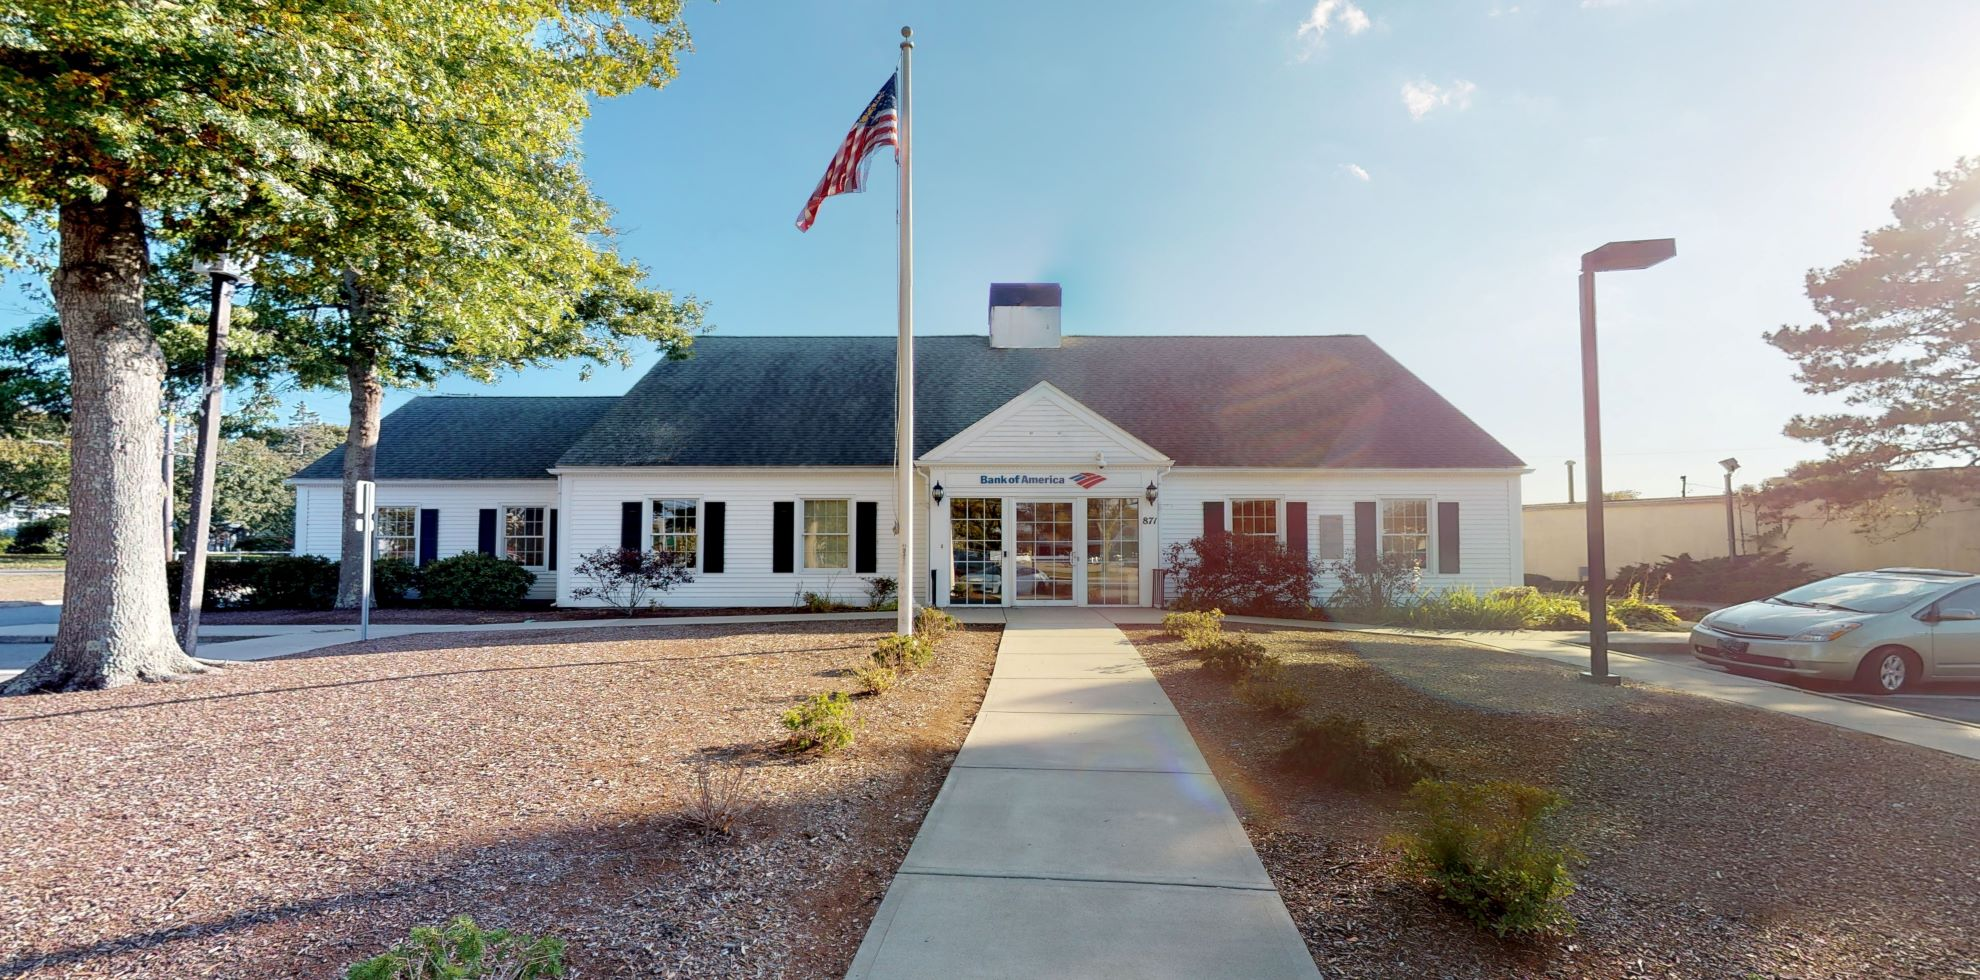 Bank of America financial center with drive-thru ATM and teller | 871 E Main St, Falmouth, MA 02540